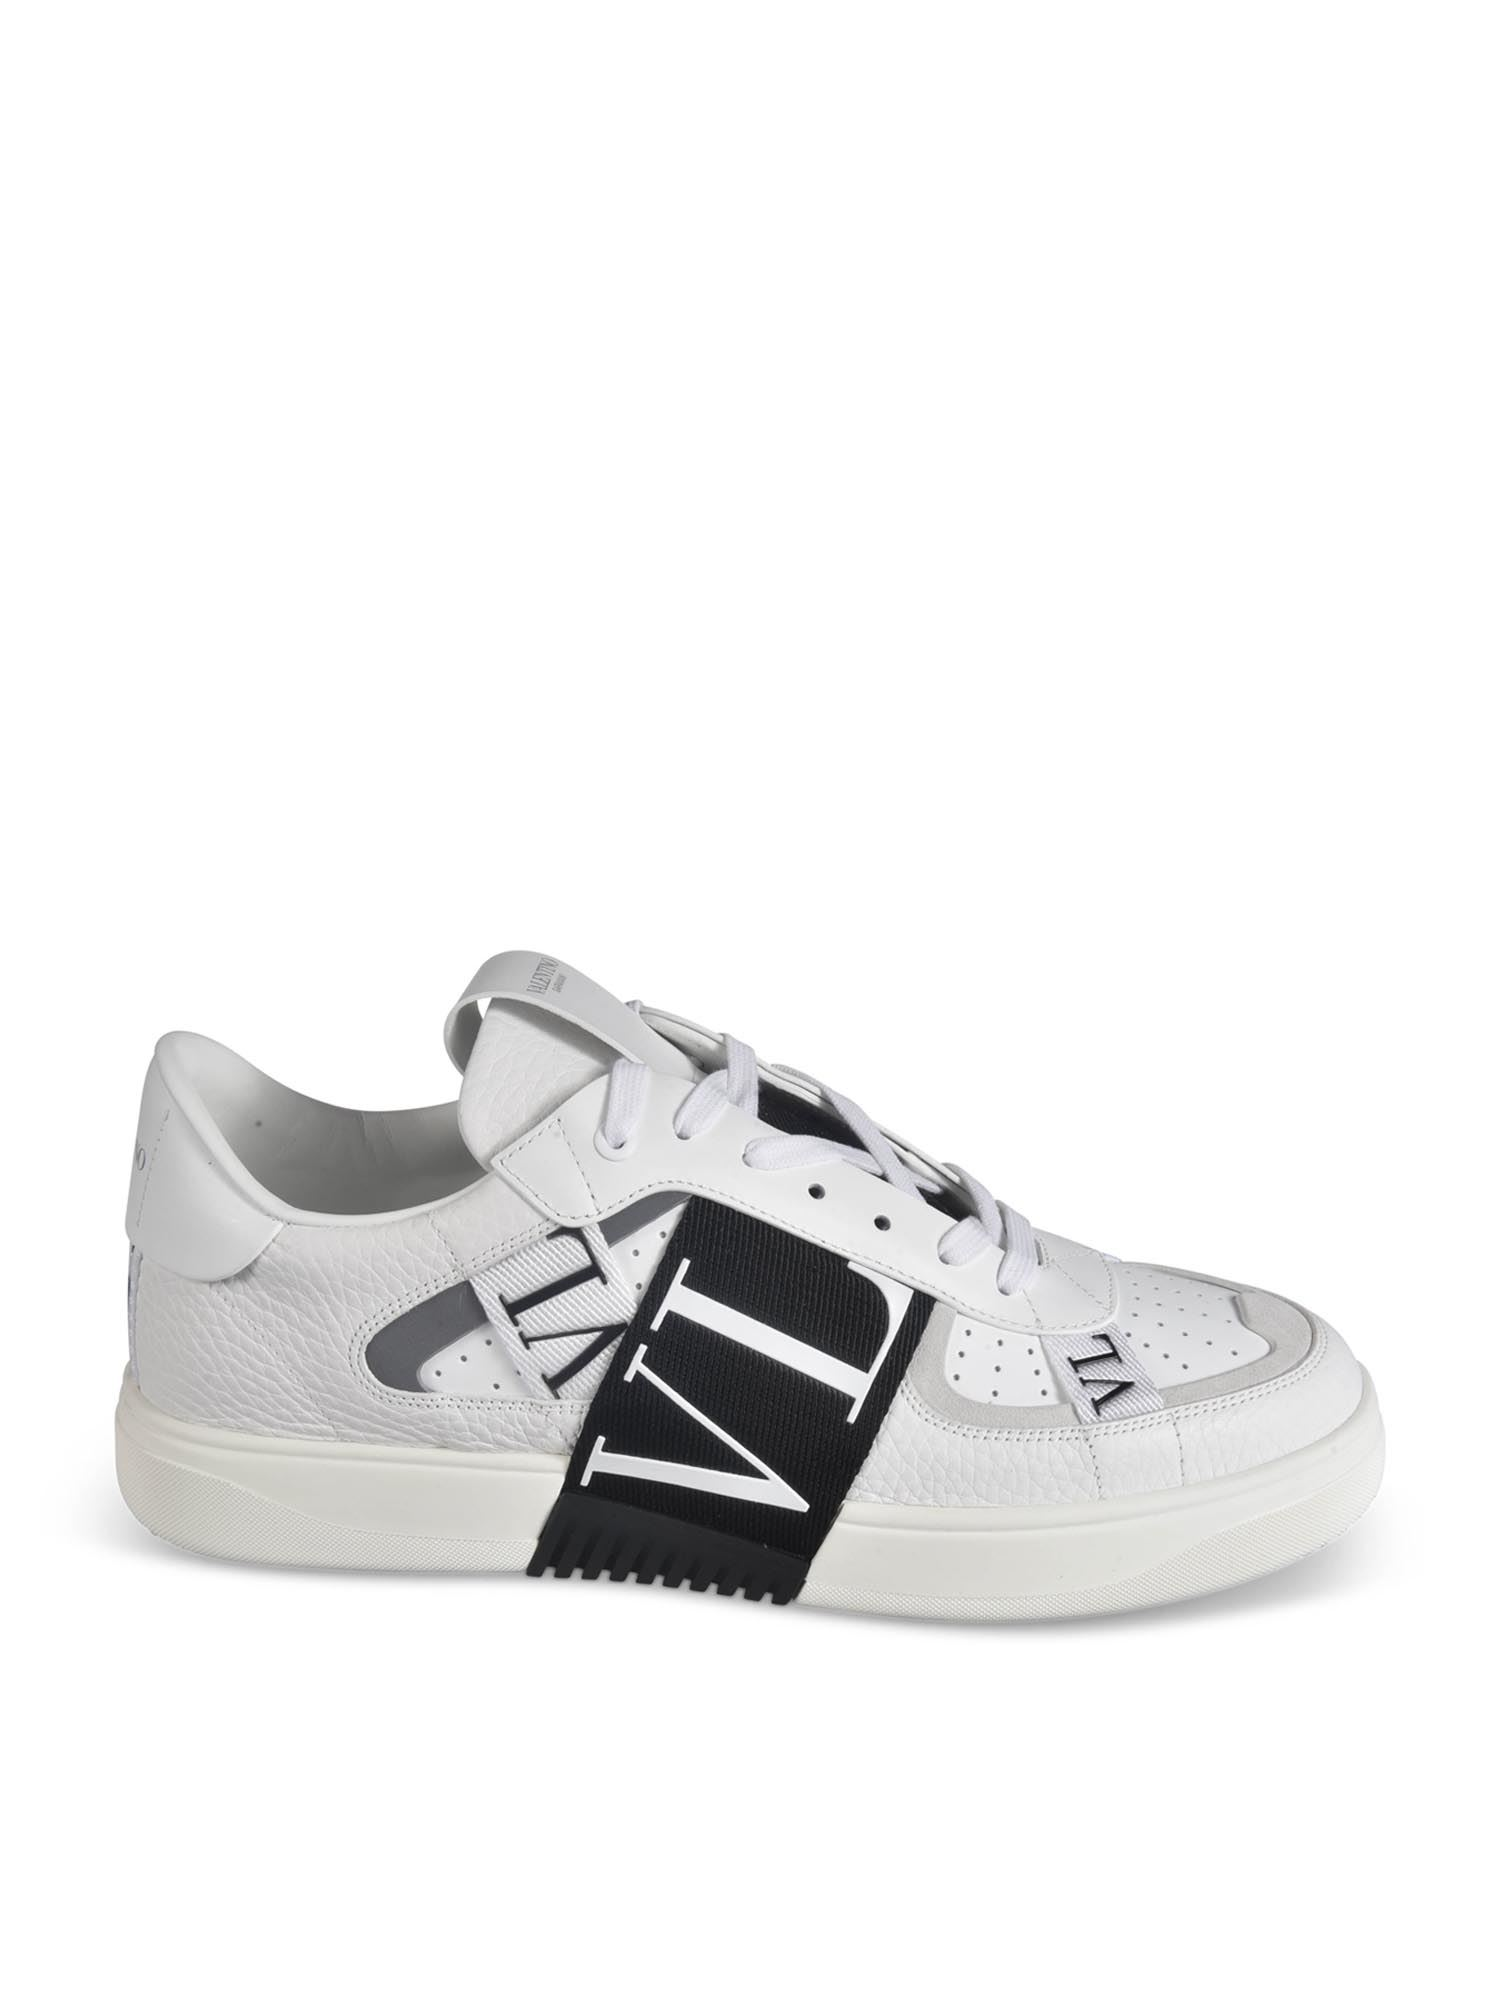 Valentino Leathers VL7N SNEAKERS IN WHITE